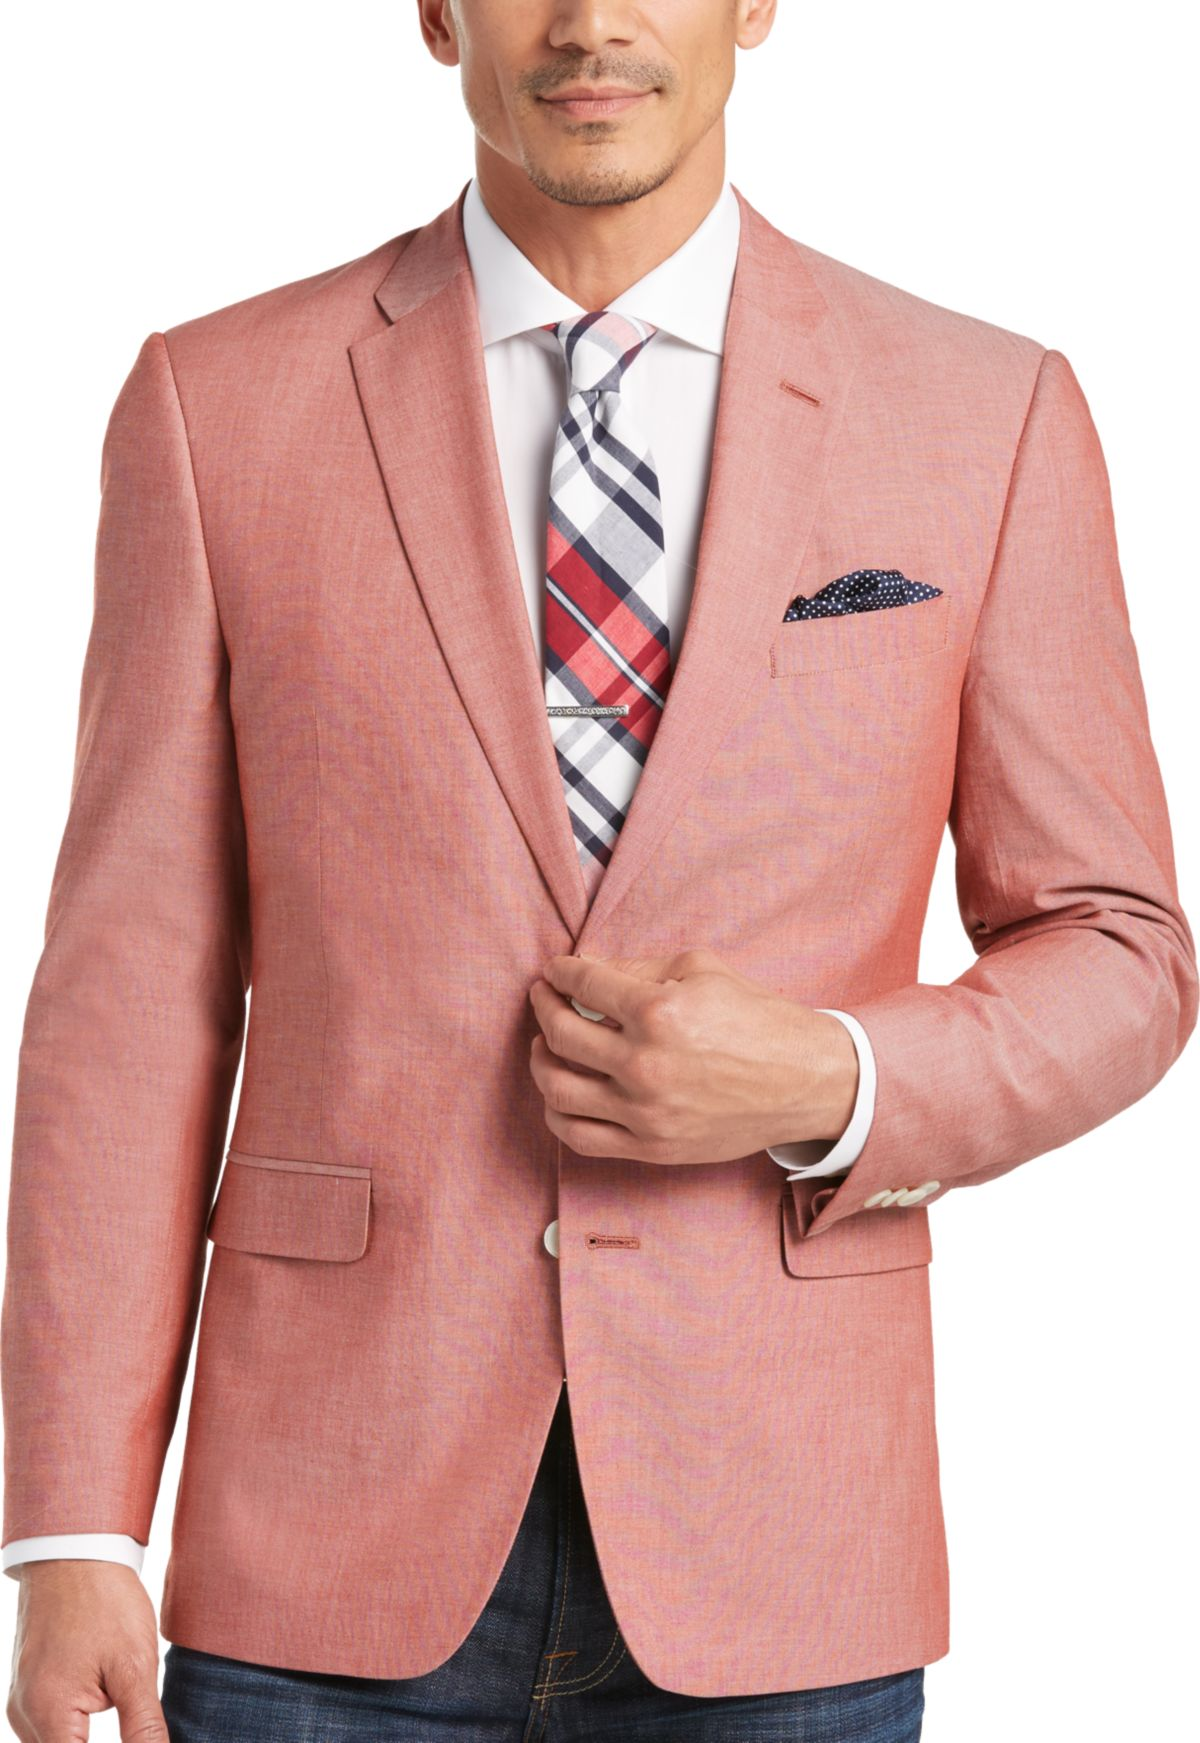 Tommy Hilfiger Red Chambray Slim Fit Sport Coat - Men's Blazers ...